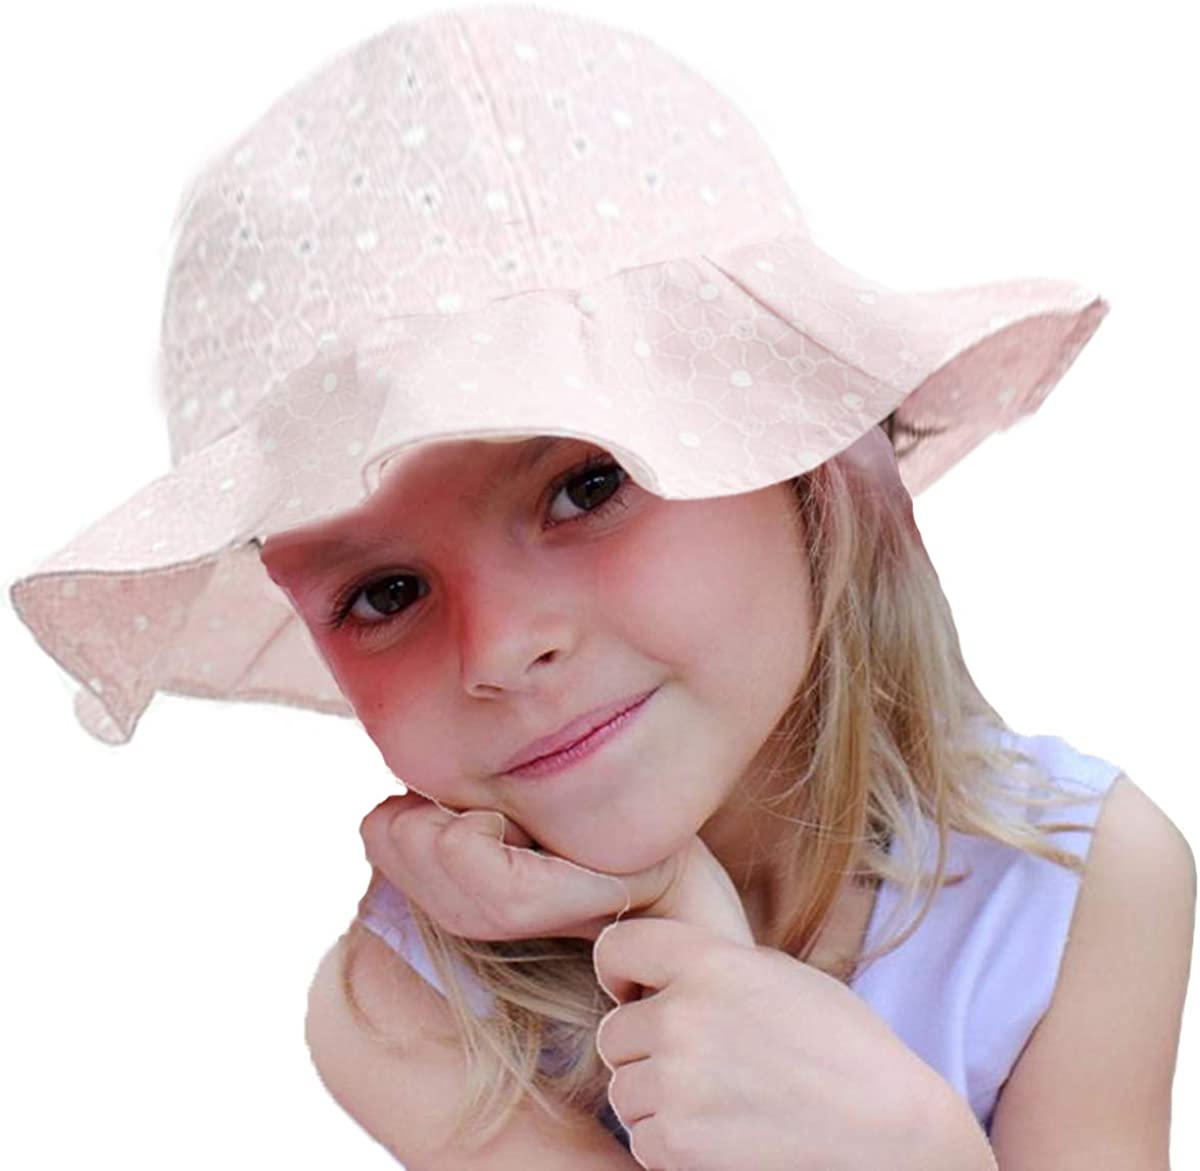 WELROG Baby Toddler Girl Sun Hat 19.7 inch Swimming Summer Sun Protection Floppy Wide Brim Hat Fit for 12-48 Months Baby